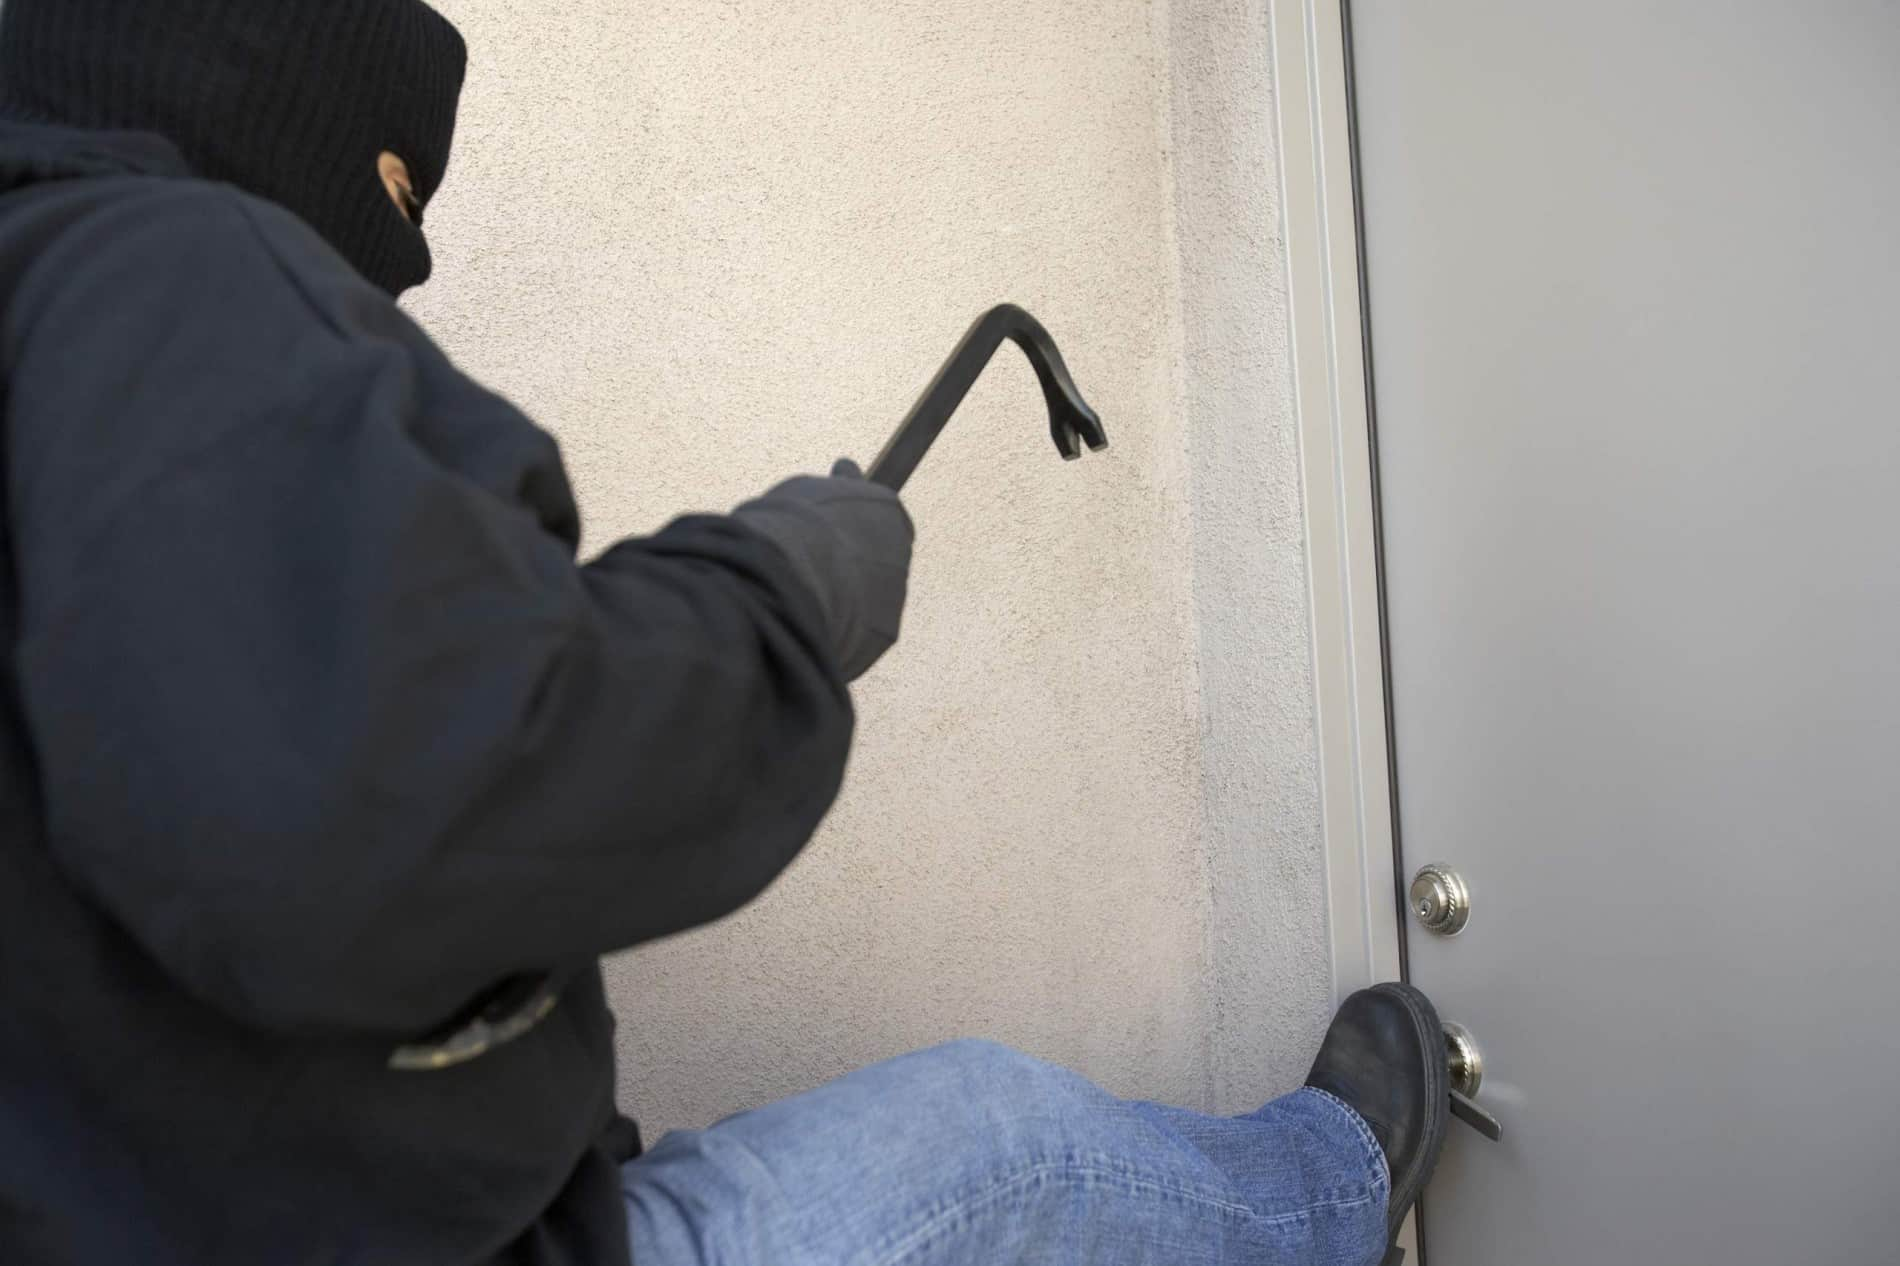 How to Reinforce your Door Entry to Keep Your Home Safe from Burglars